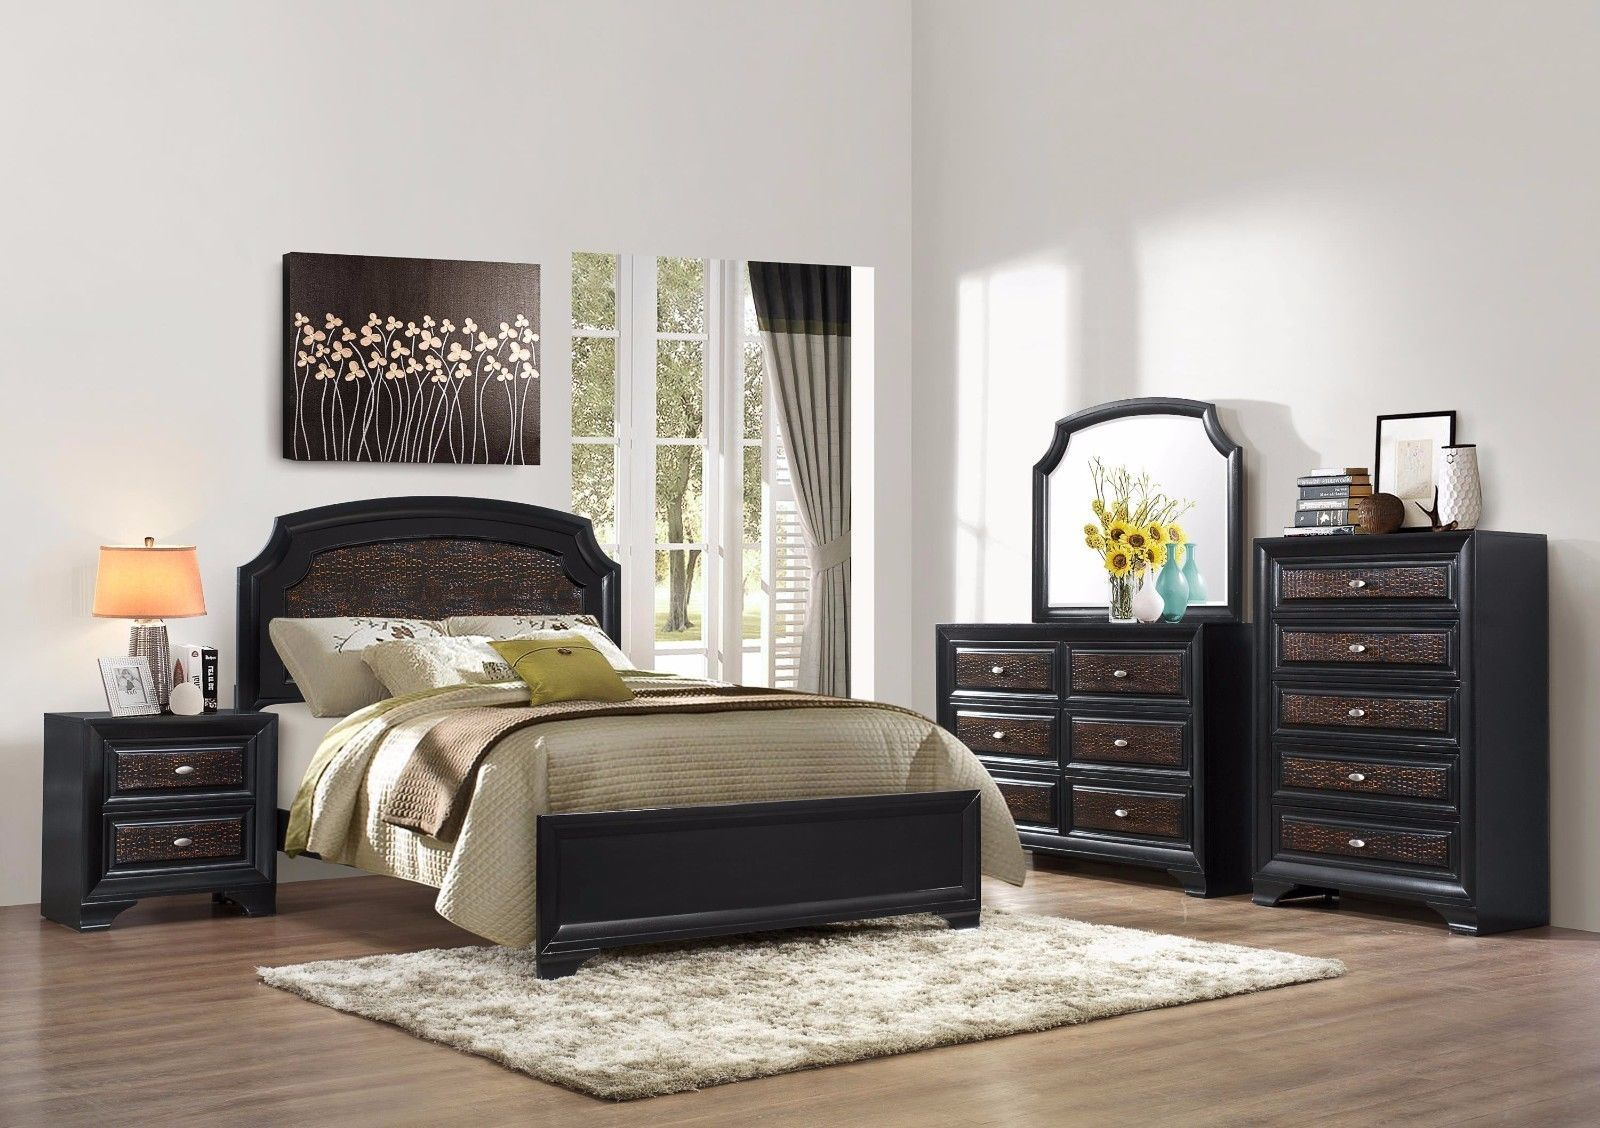 Crown Mark RB4300 Andros King Size Bedroom Set 5pc. Traditional style